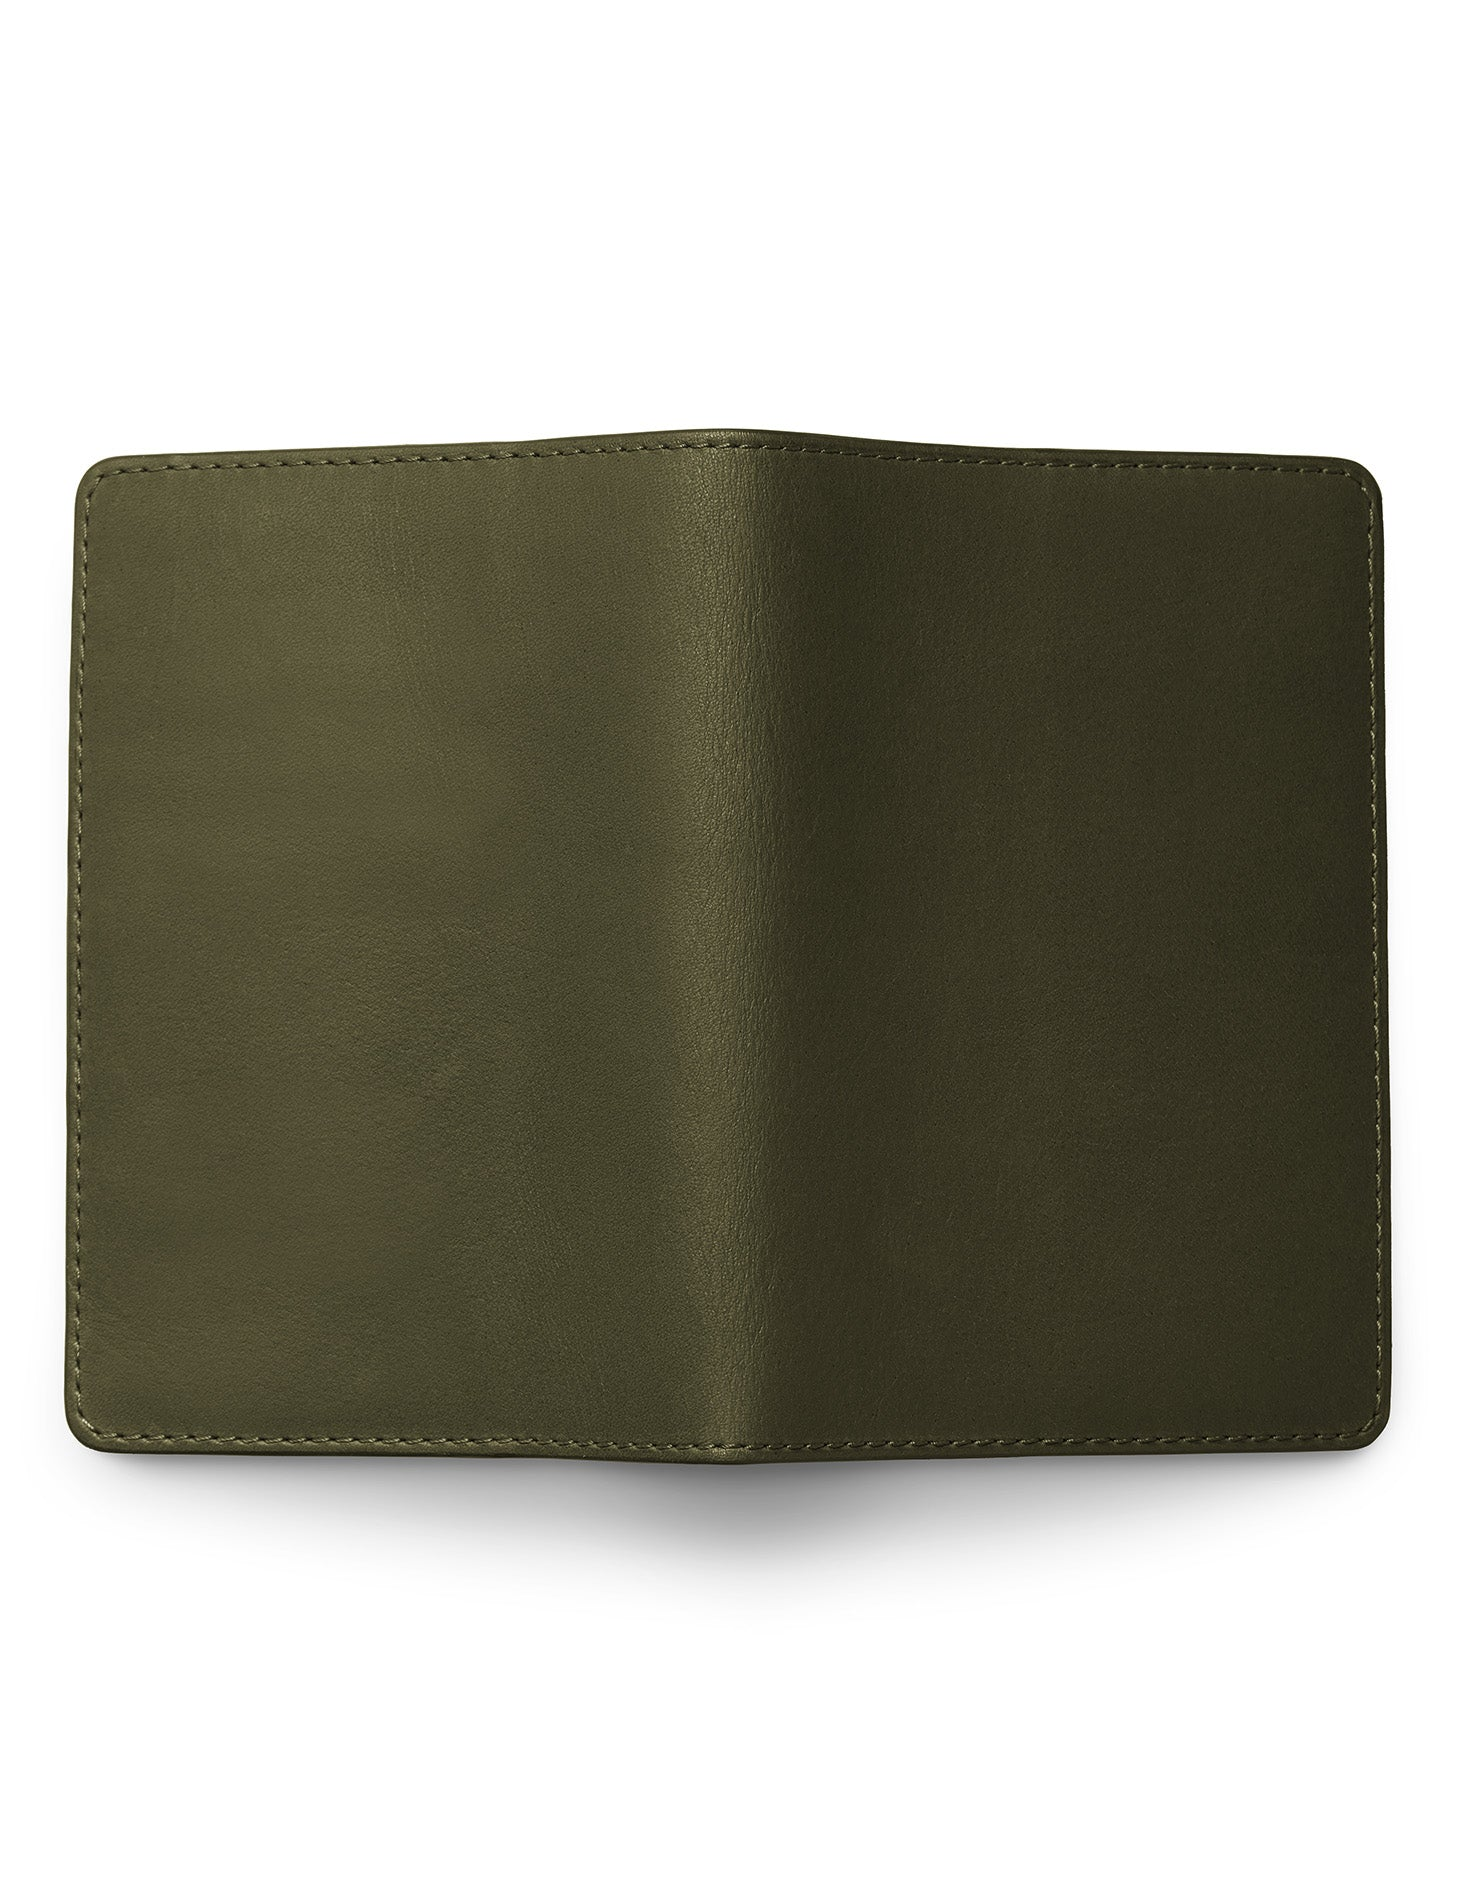 David August Luxury Genuine Vintage Calfskin Leather Passport Holder in Olive Green